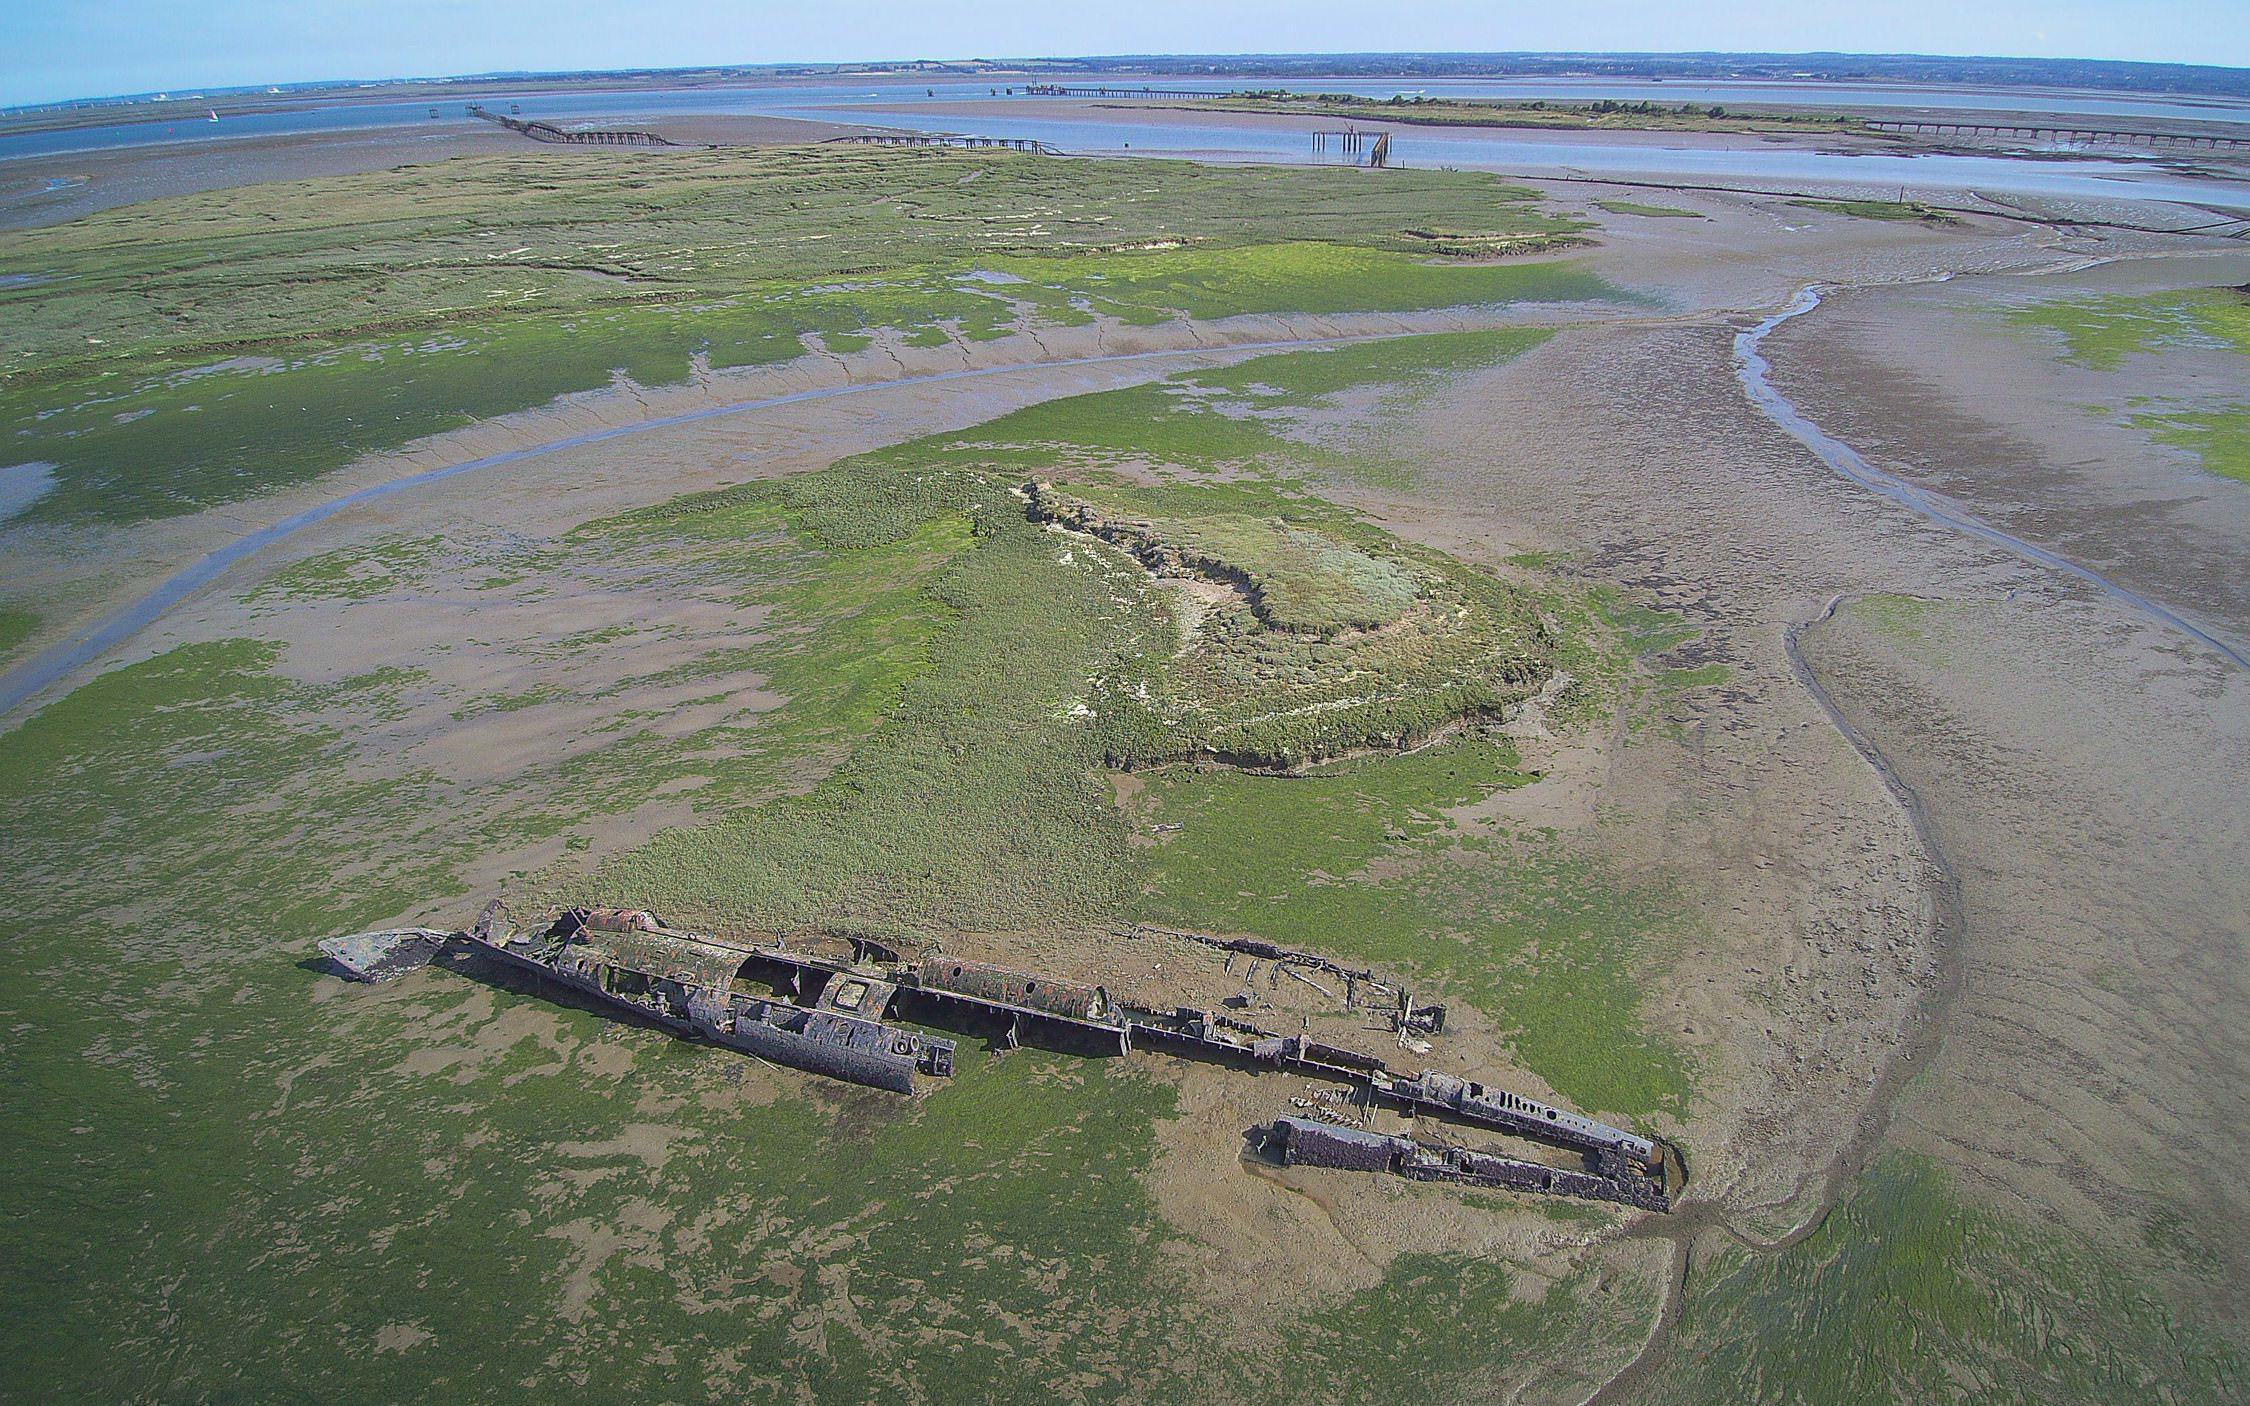 How did the German U-boat end up in the marshes of Kent ?